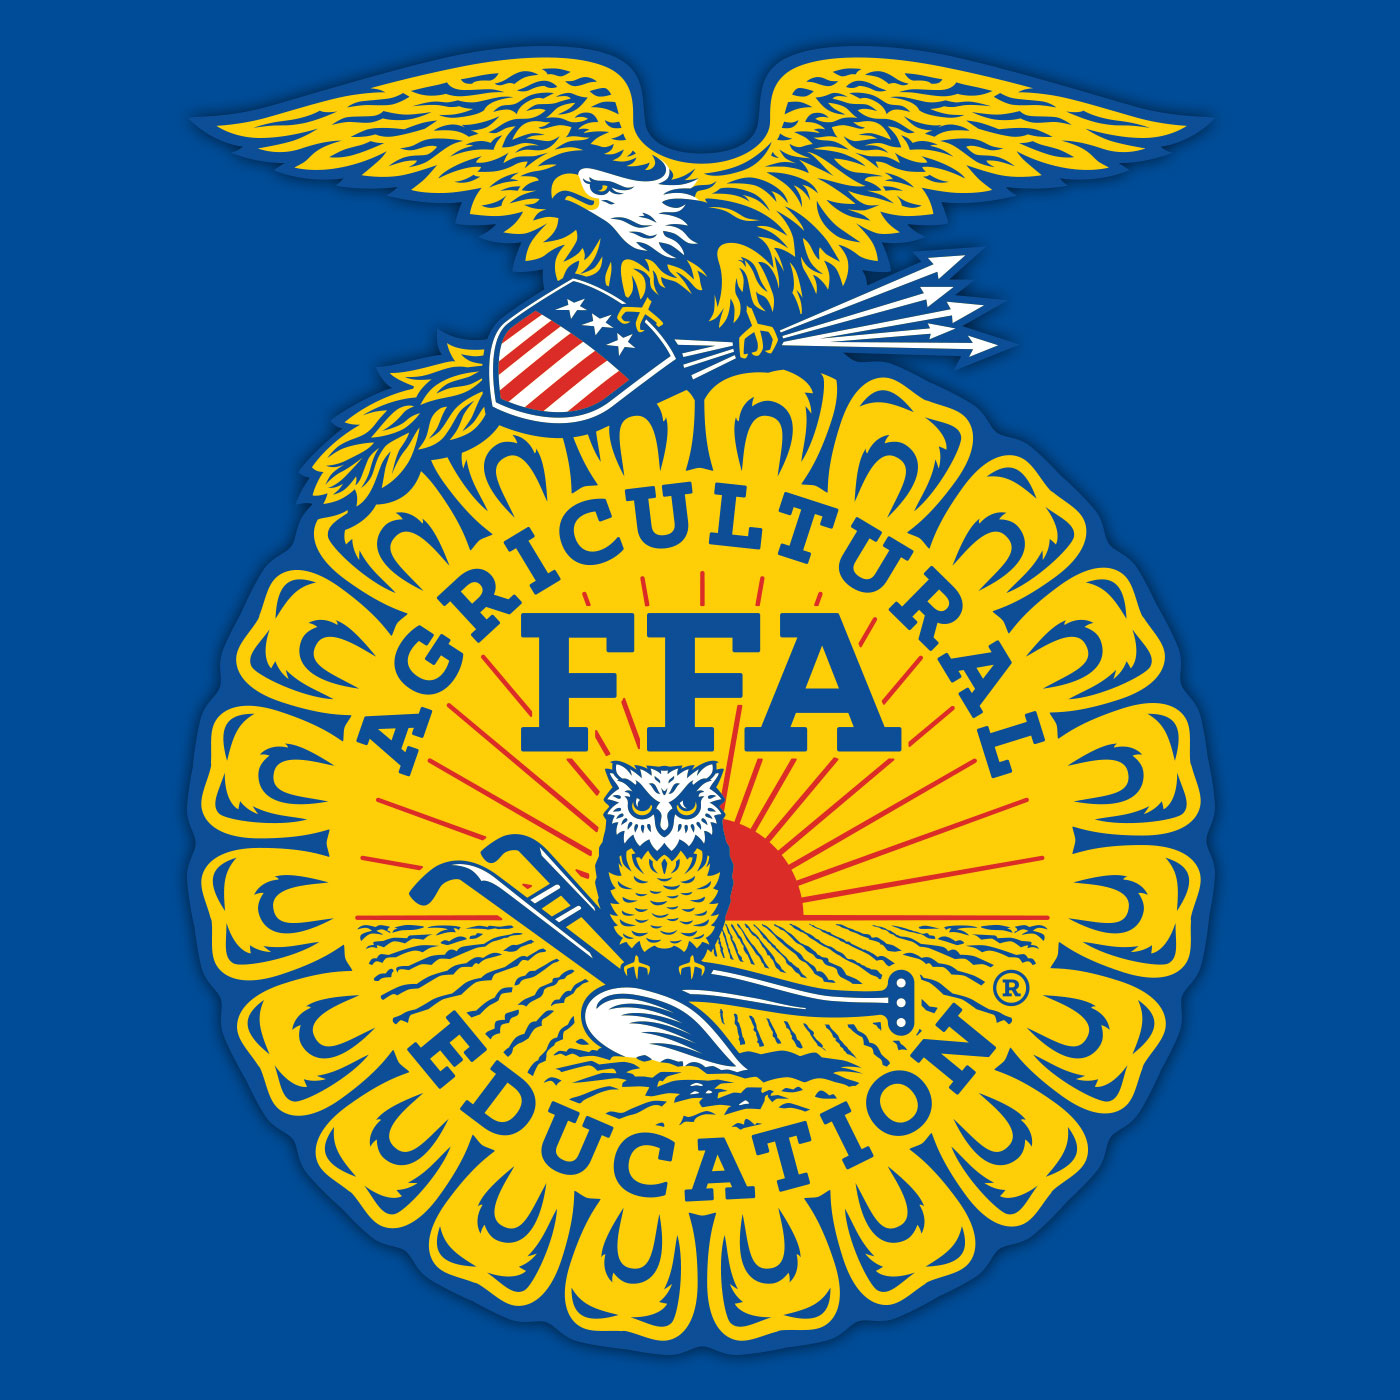 Meet the 2018-19 National FFA President Luke O'Leary